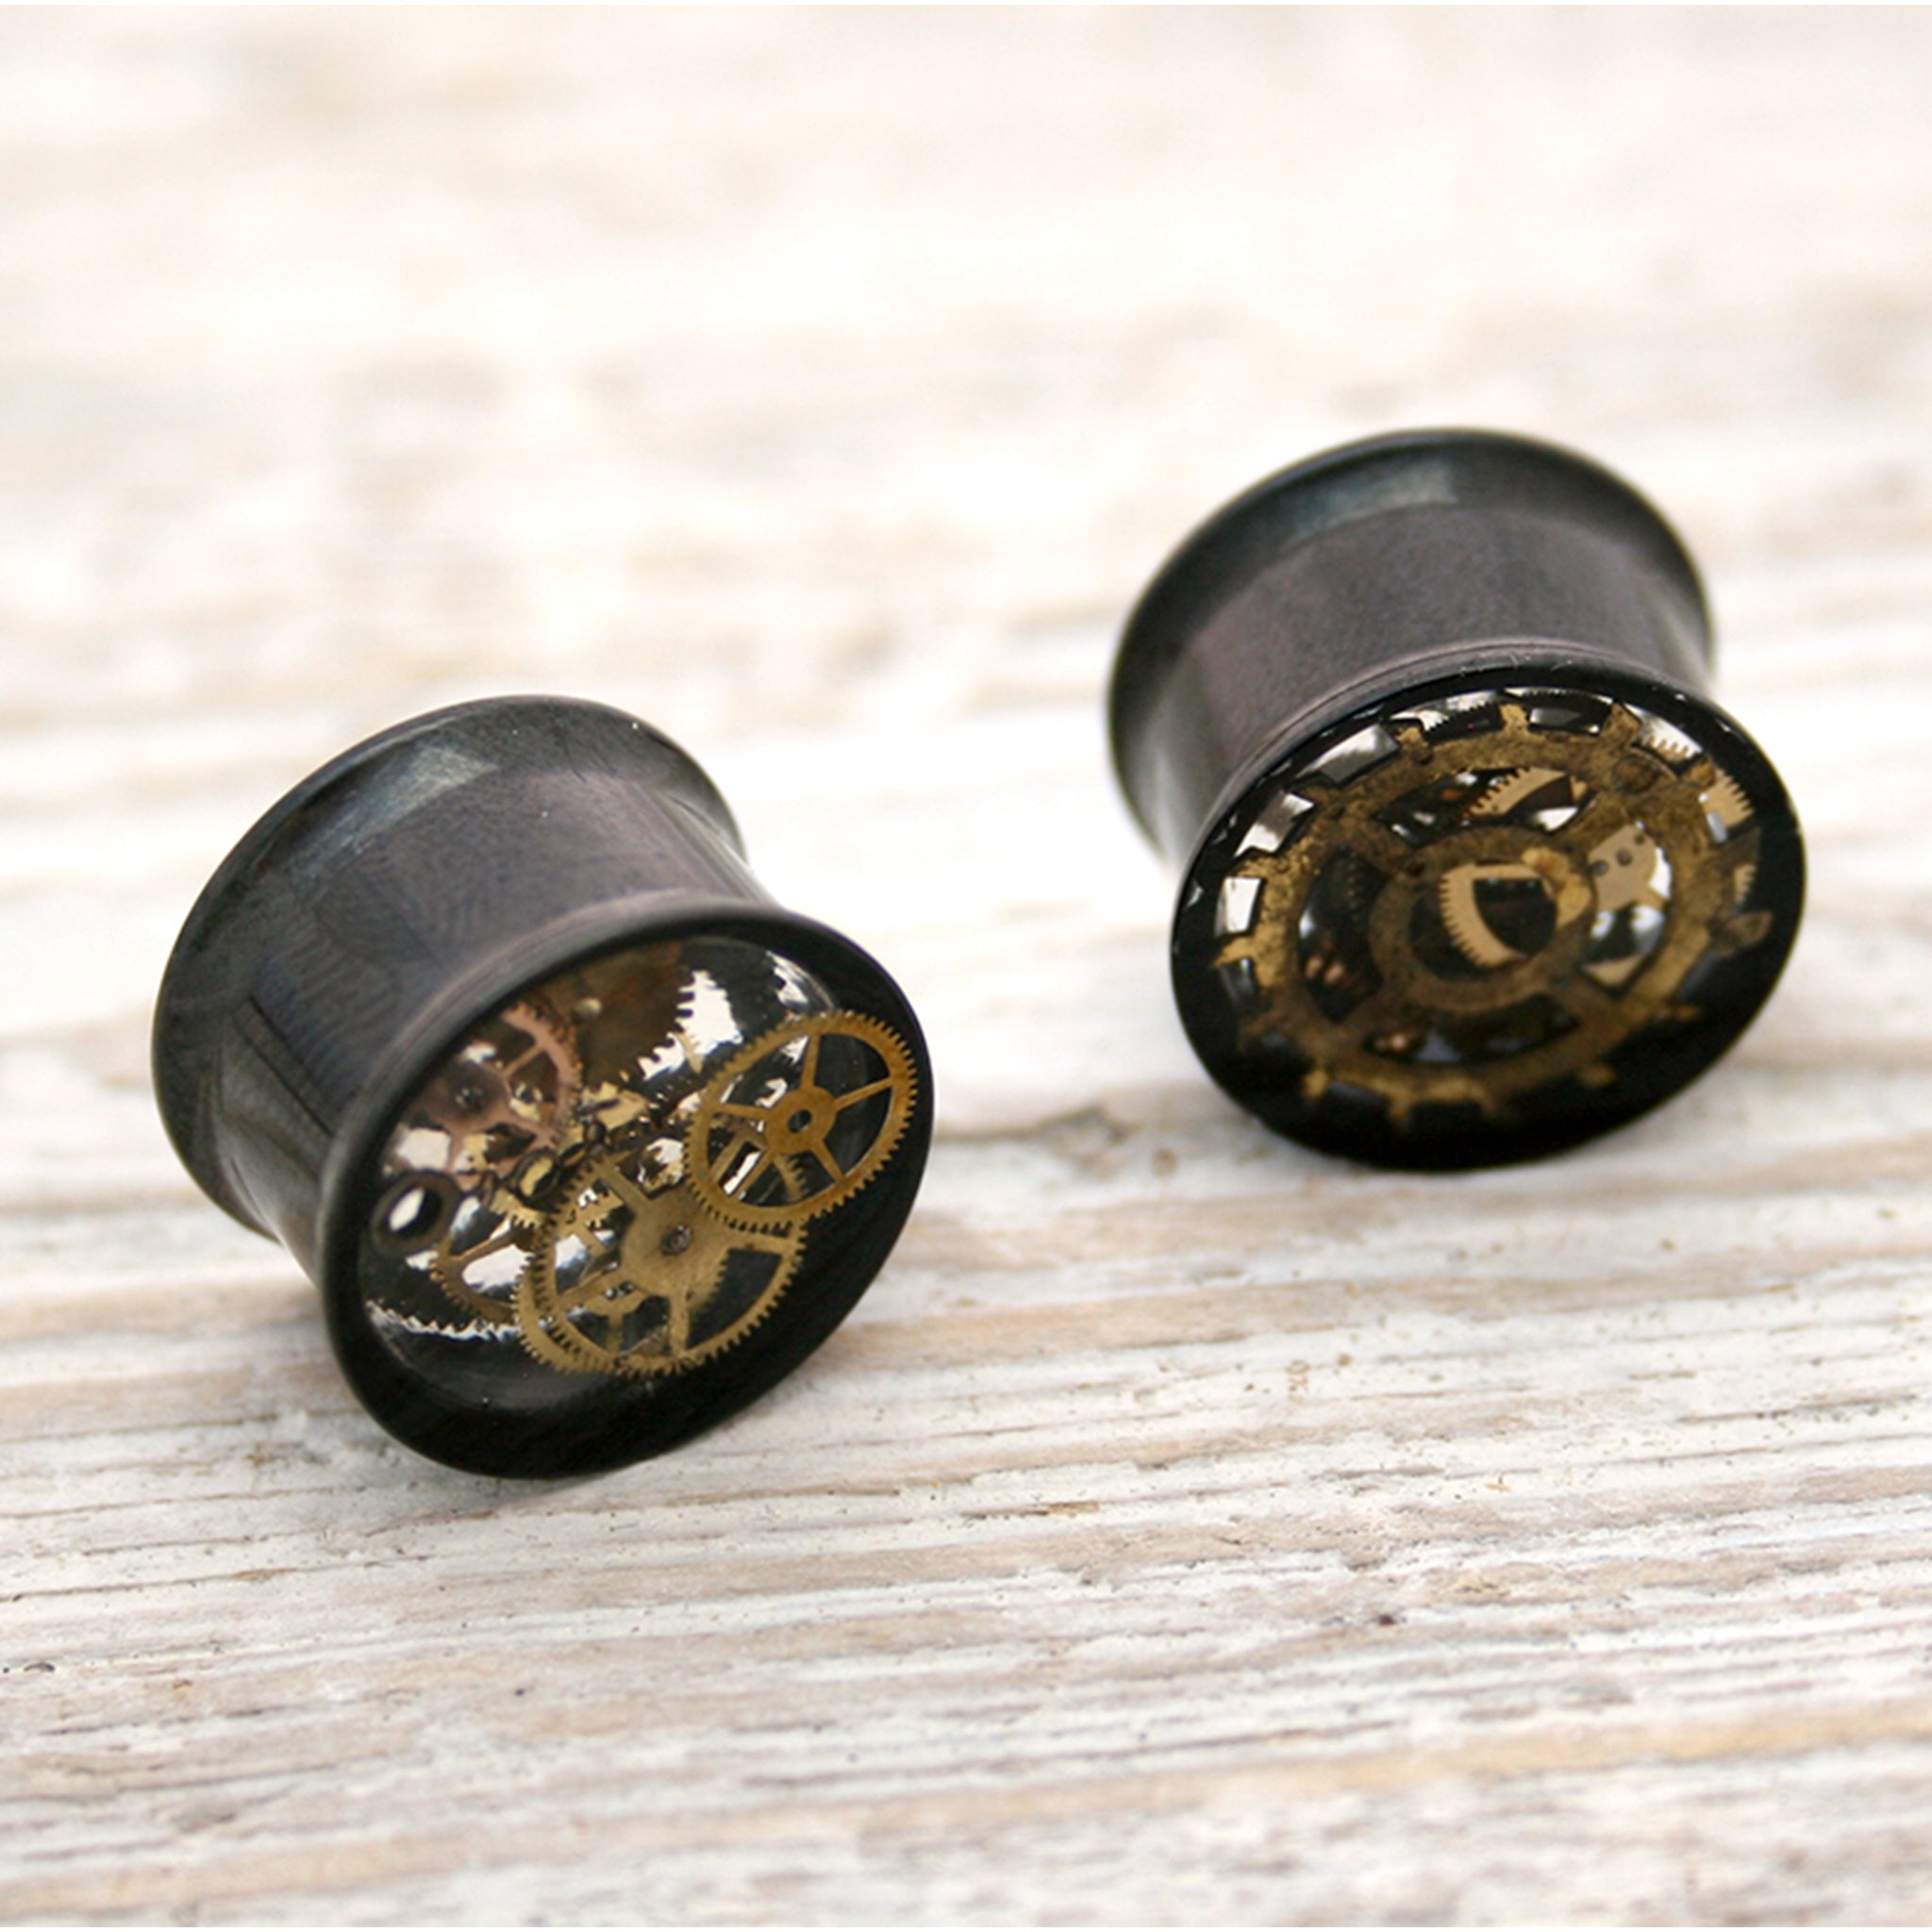 Cool 16mm double flare ear gauges in steampunk style